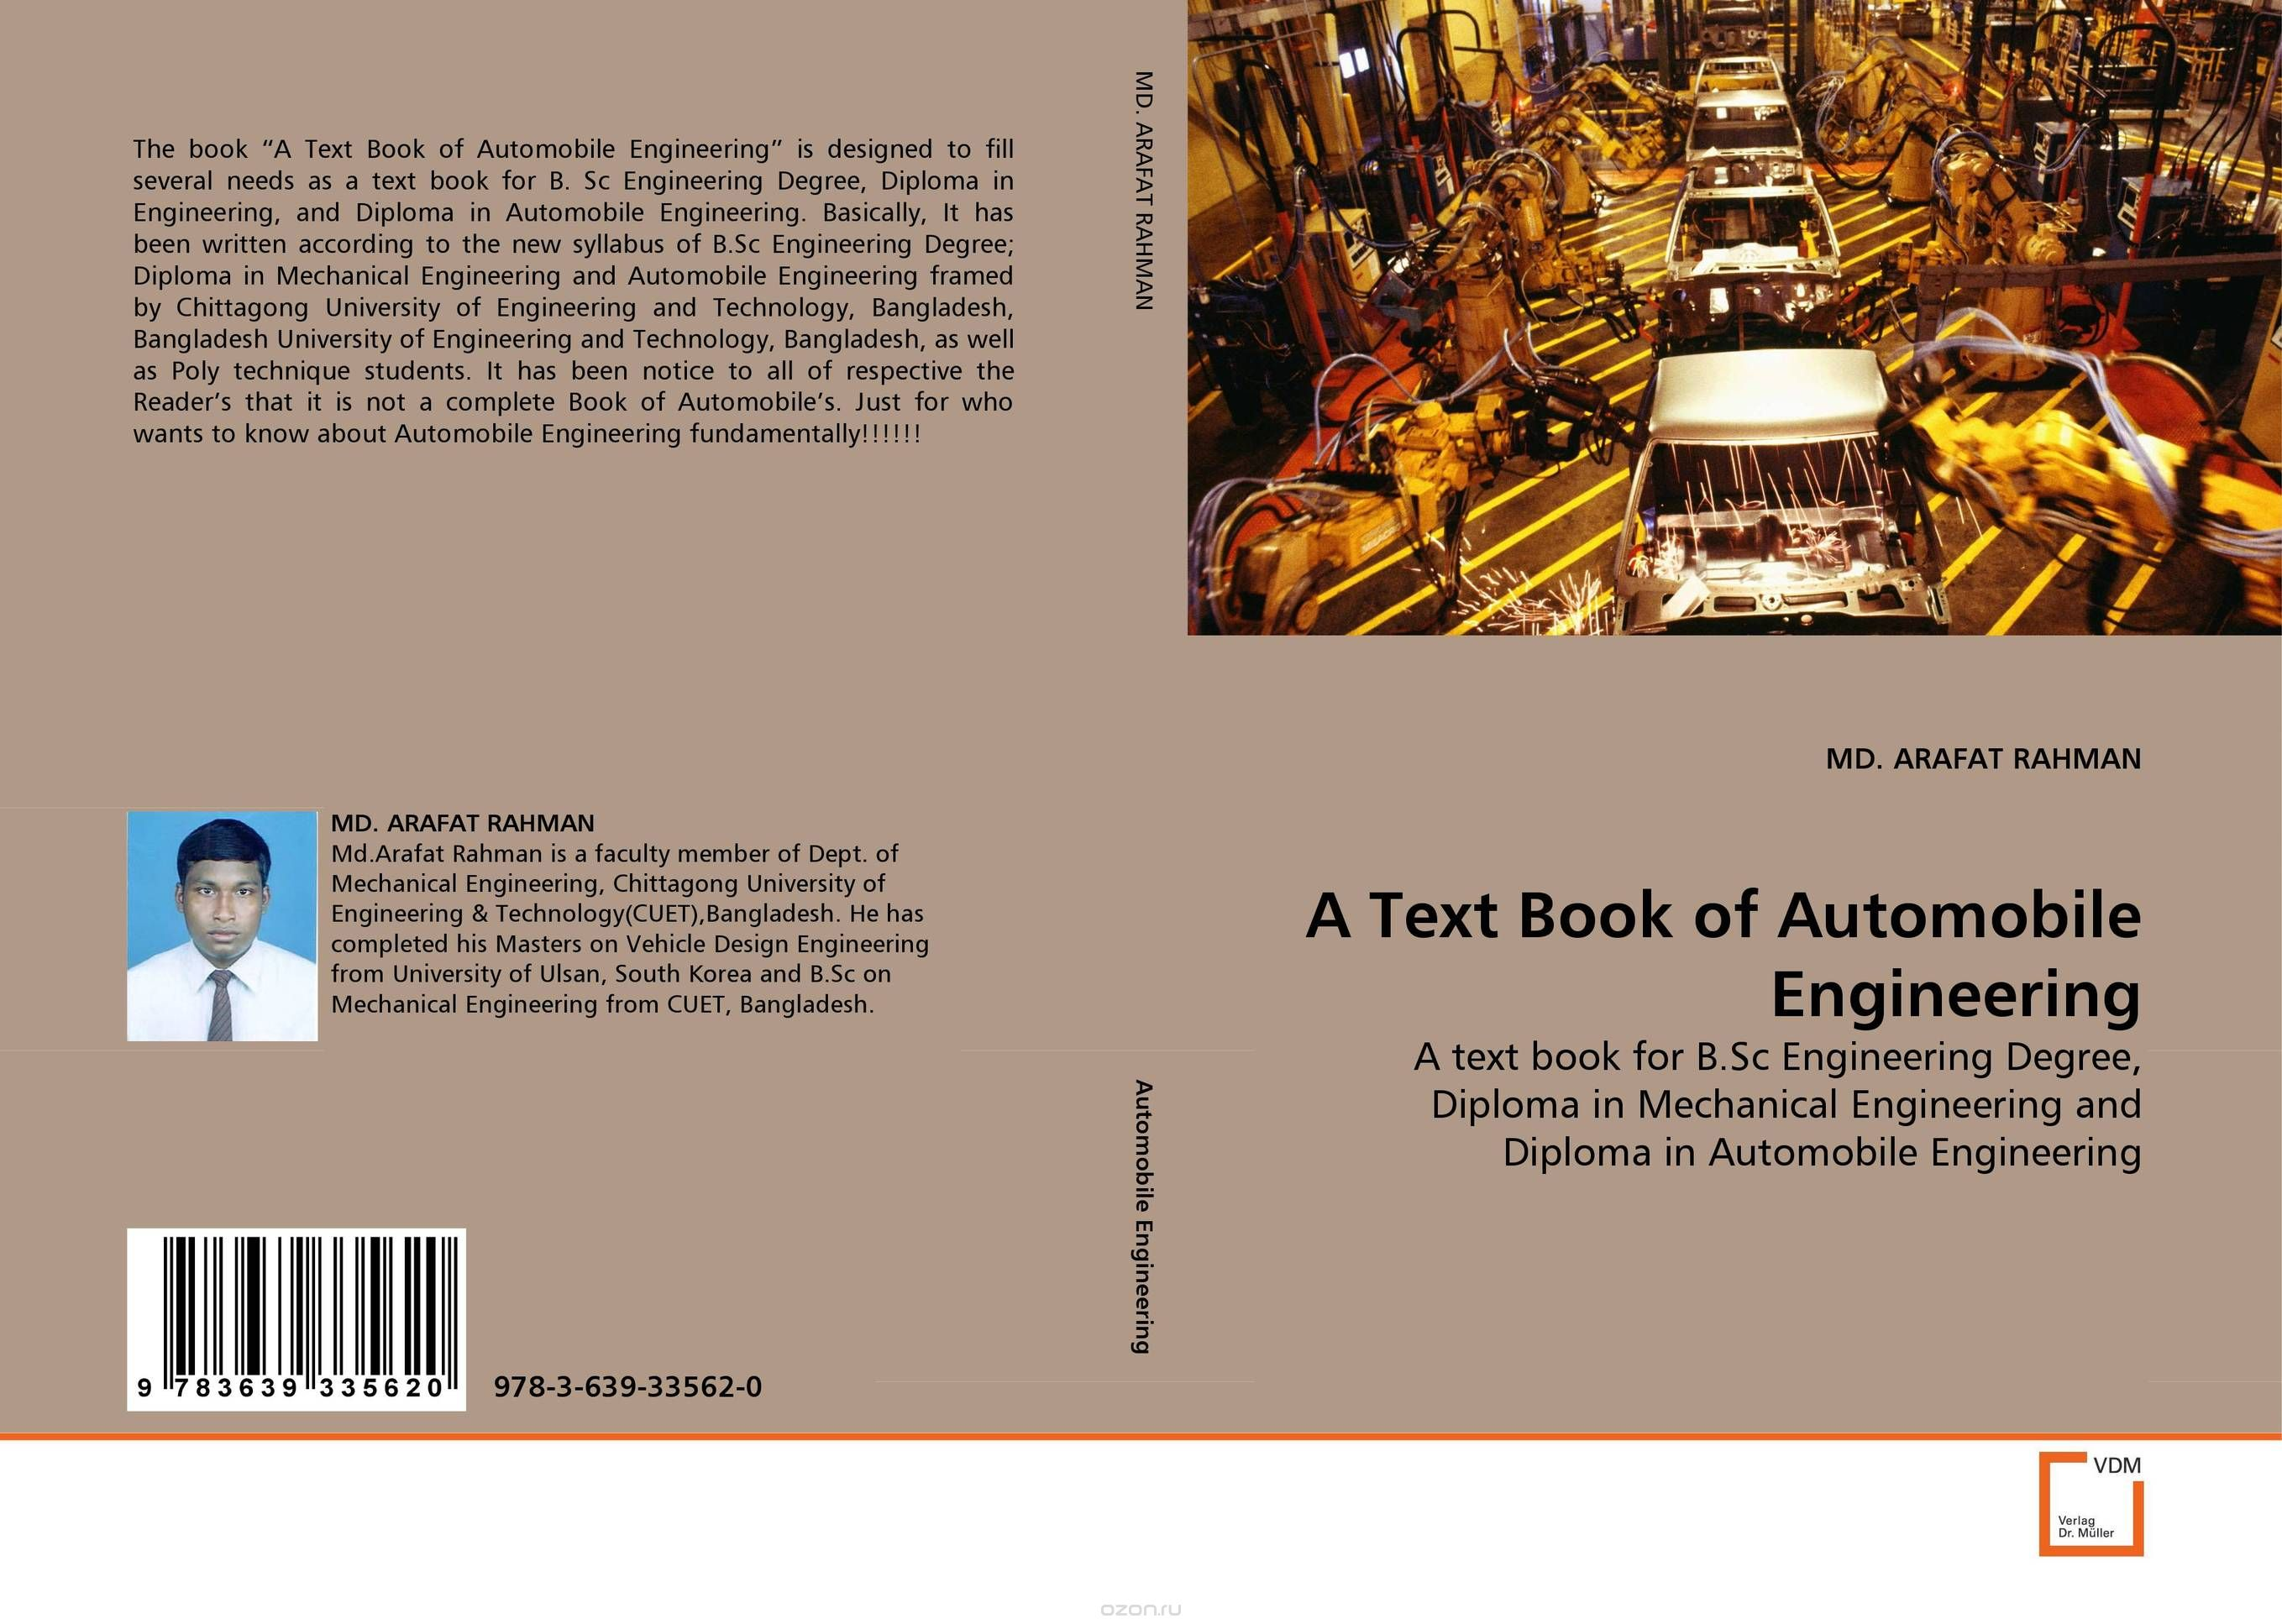 A Text Book of Automobile Engineering